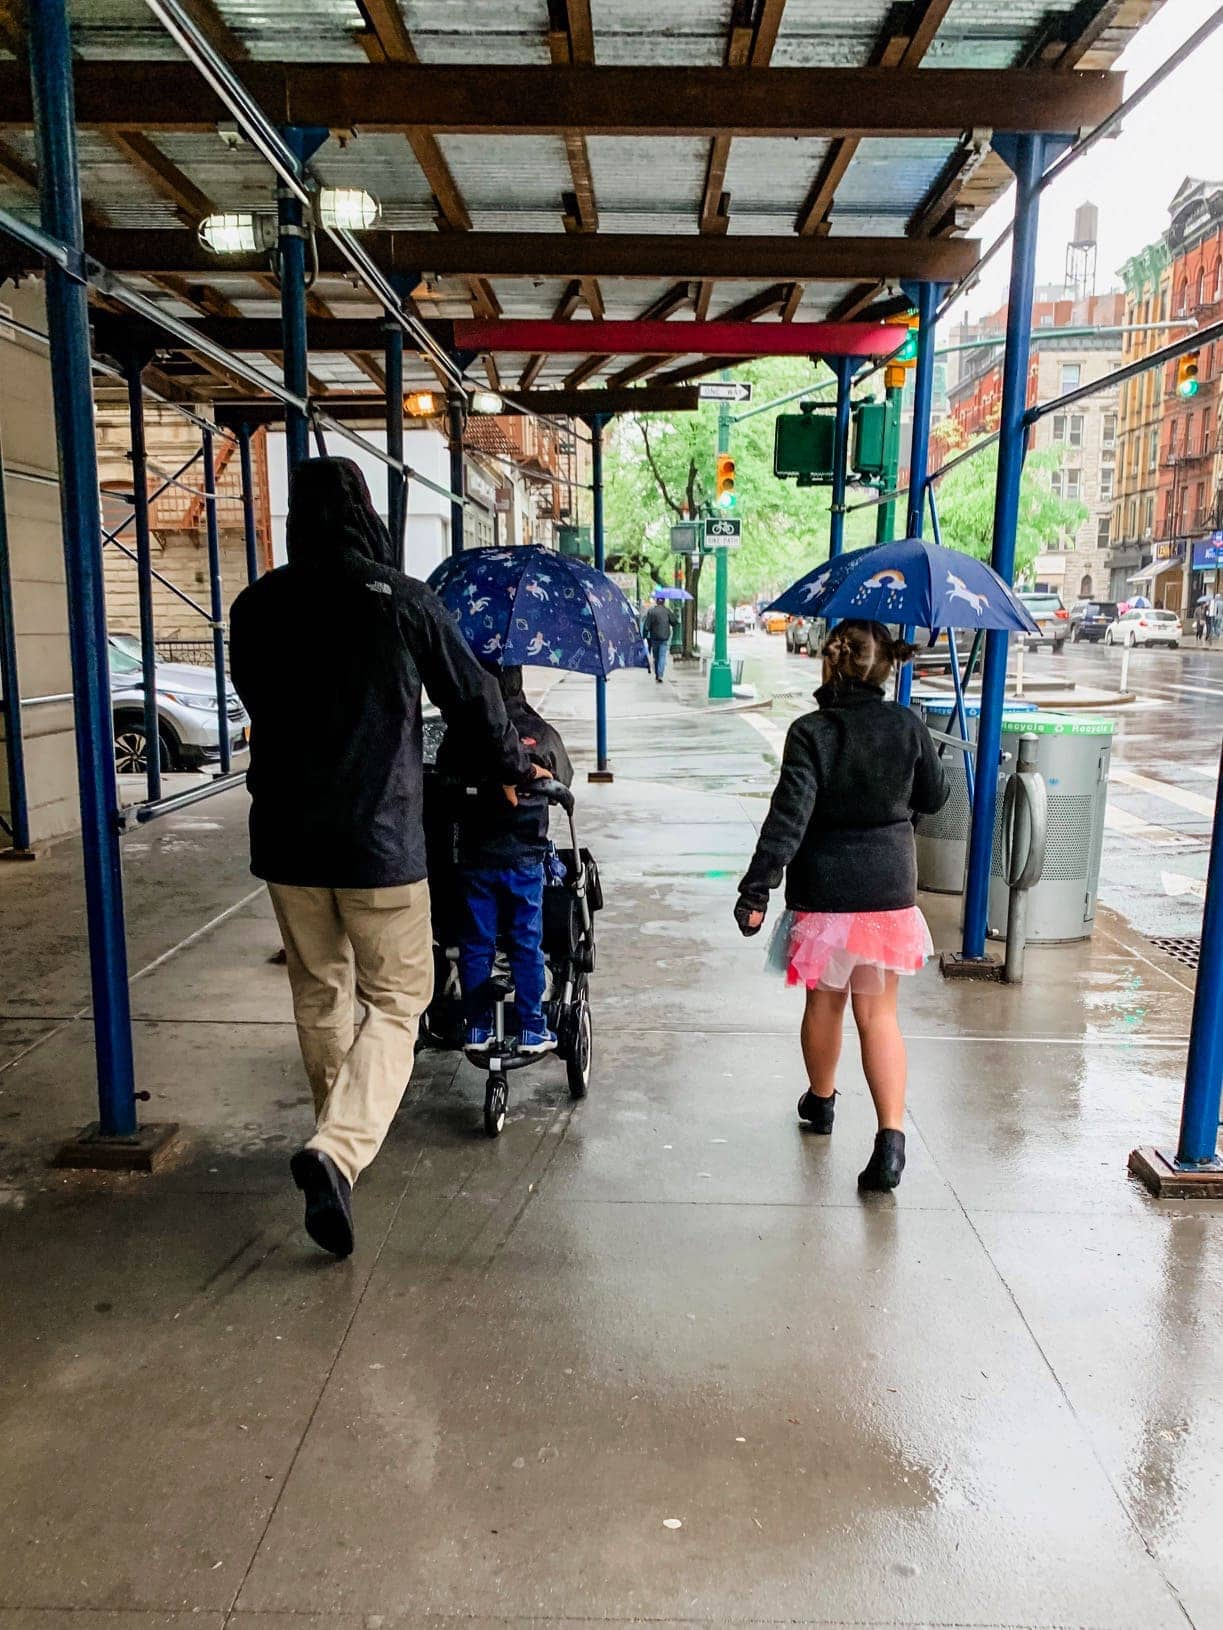 Gordon and the kids walking to church in the rain